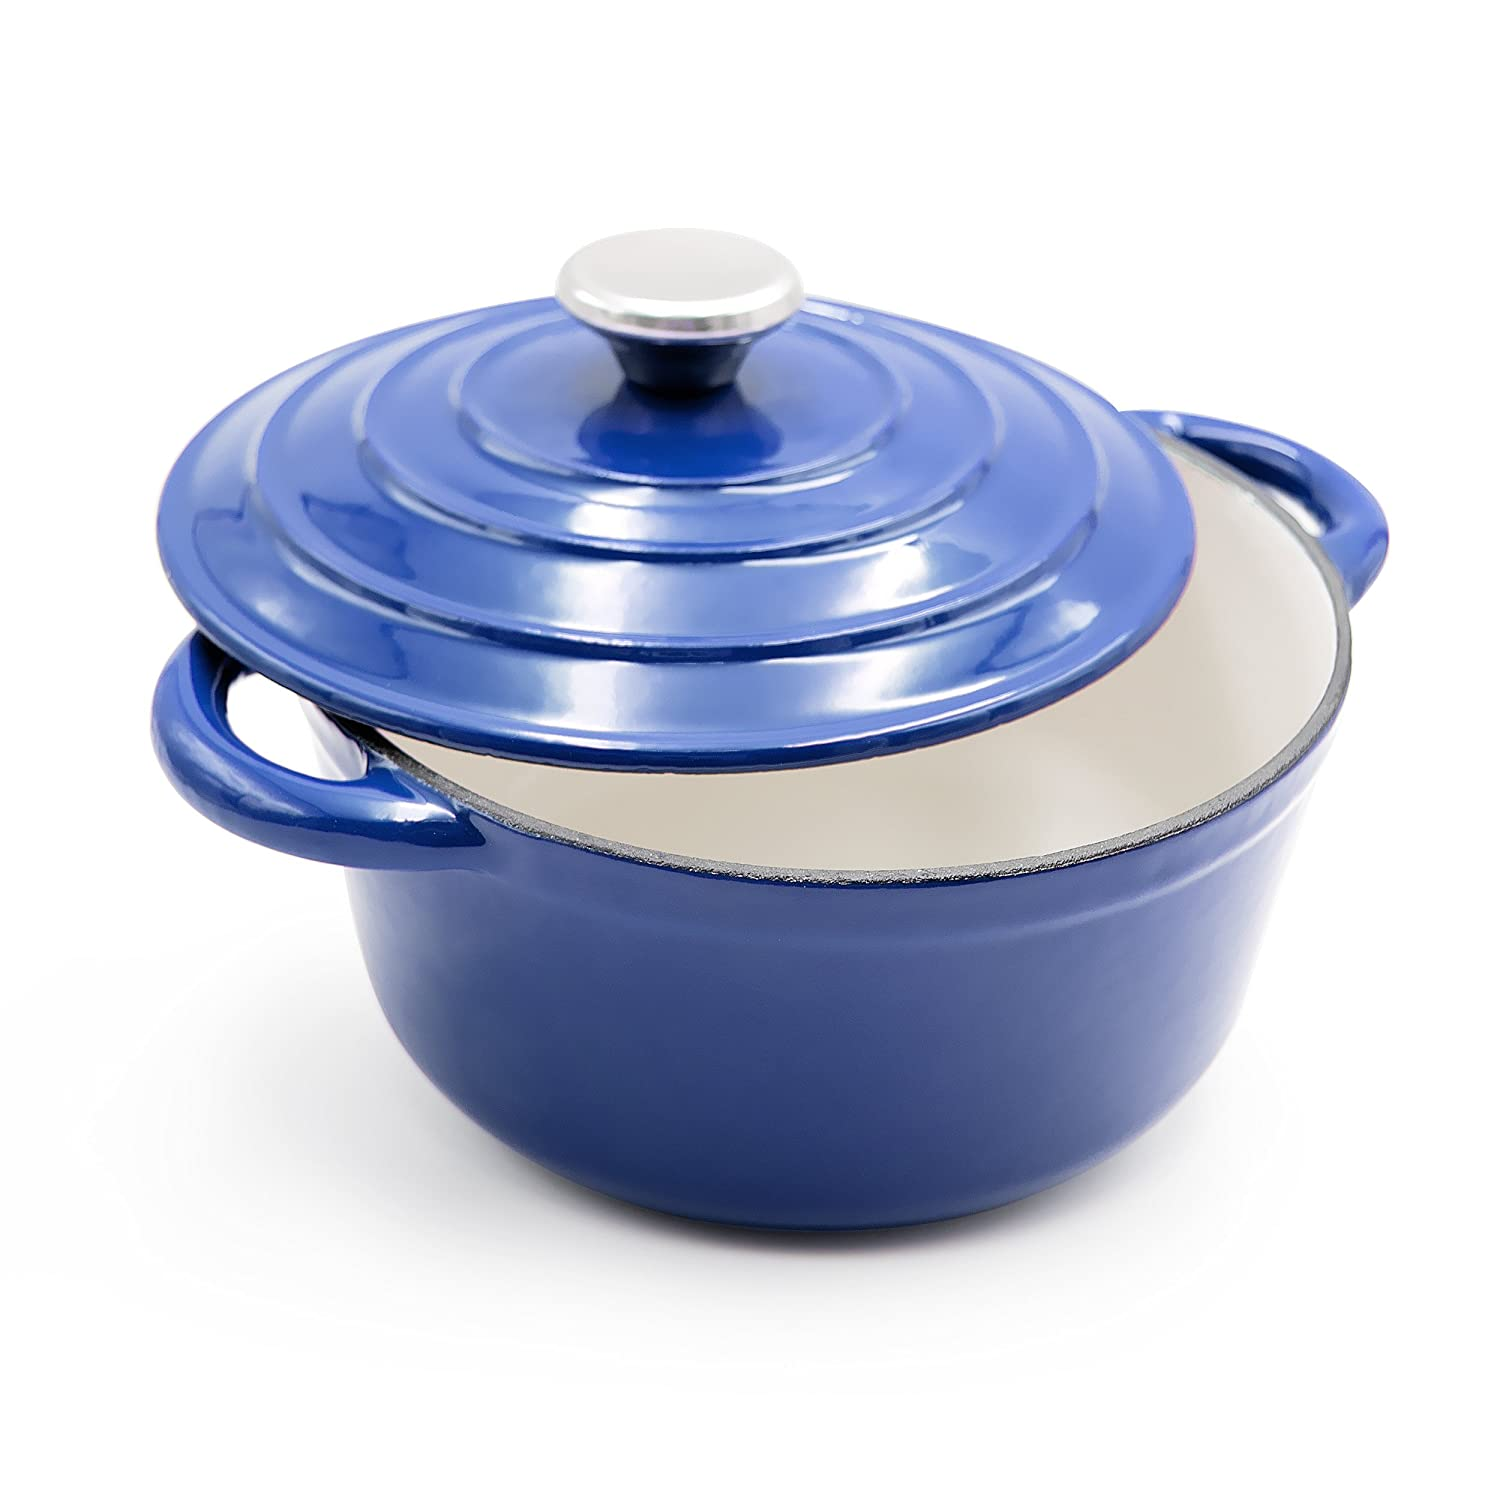 AIDEA Enameled Cast Iron Dutch Oven - 5-Quart Cobalt Blue Round Ceramic Coated Cookware French Oven with Self Basting Lid